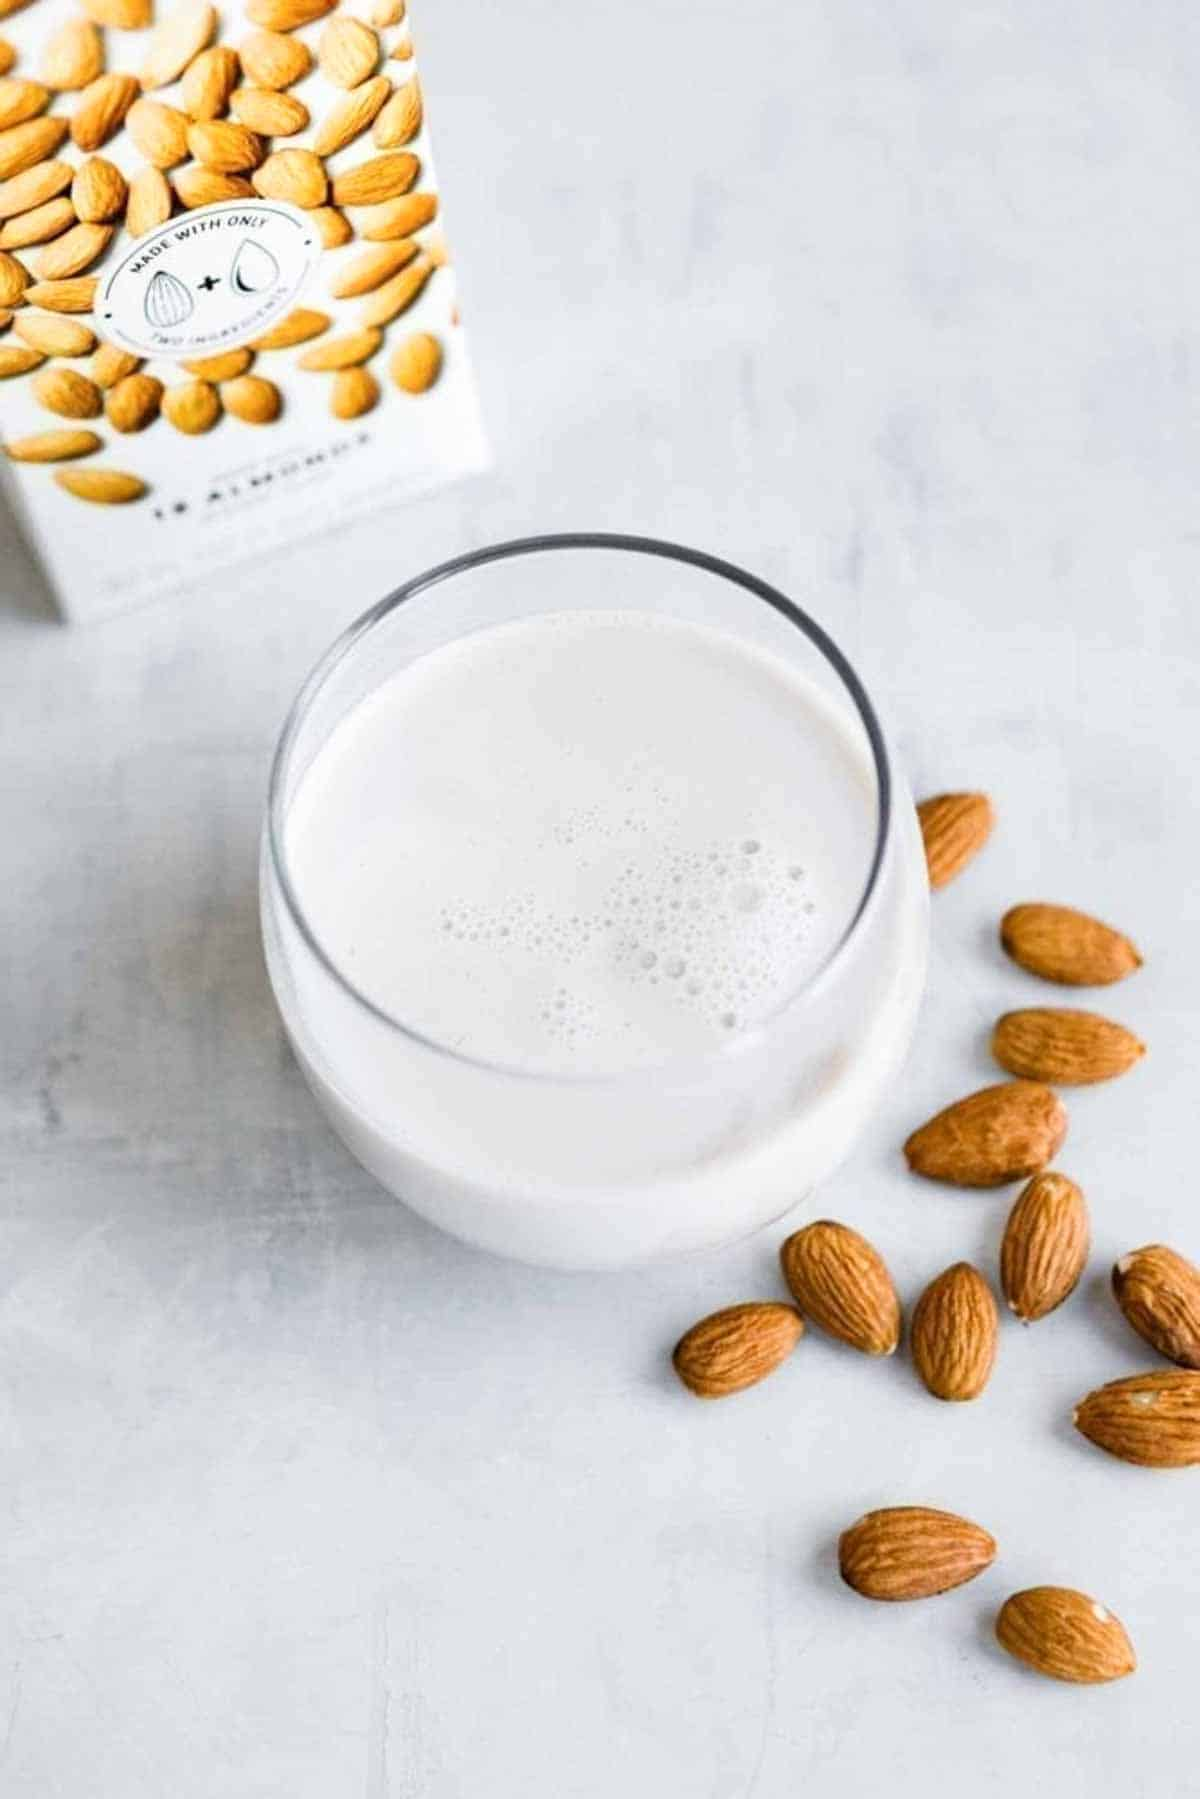 elmhurst is a delicious brand of almond milk